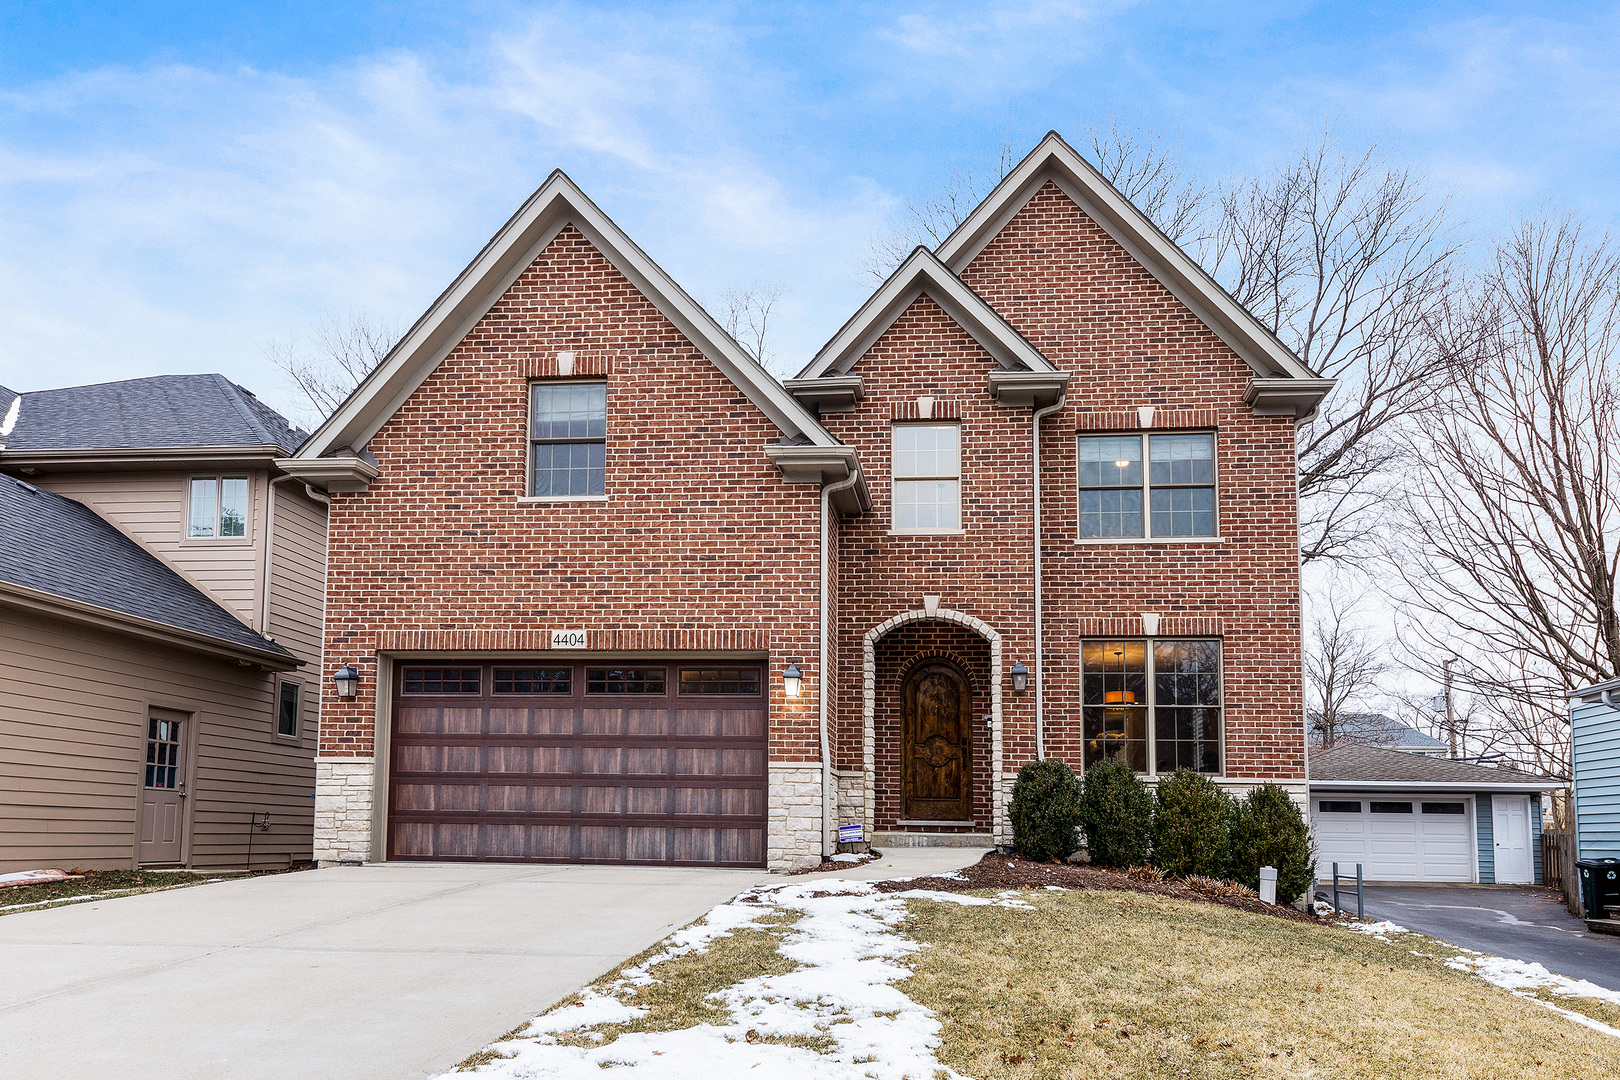 Photo for 4404 Woodward Avenue, Downers Grove, IL 60515 (MLS # 10615021)